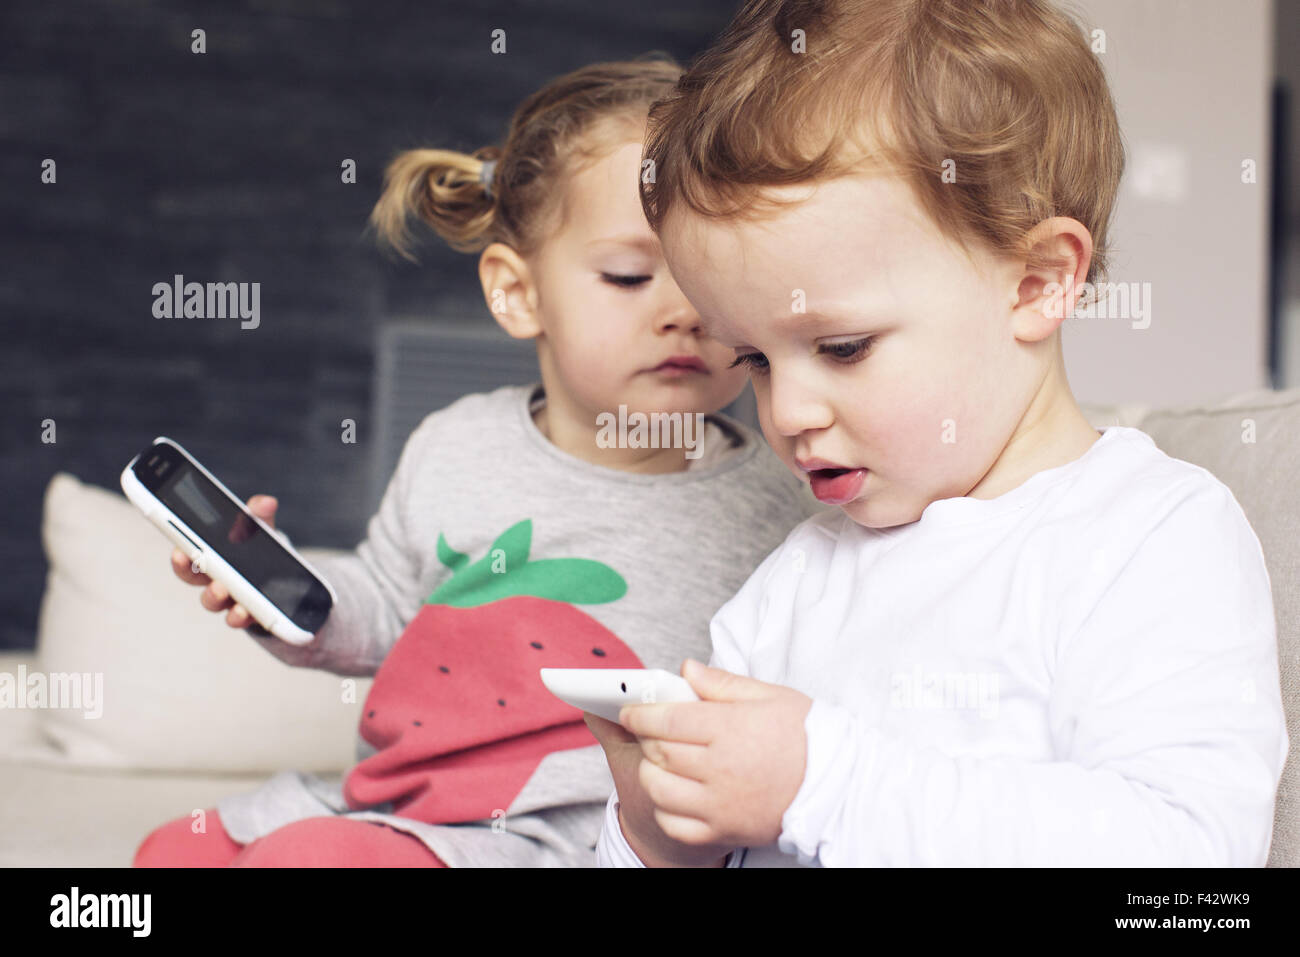 Children playing with smartphones - Stock Image